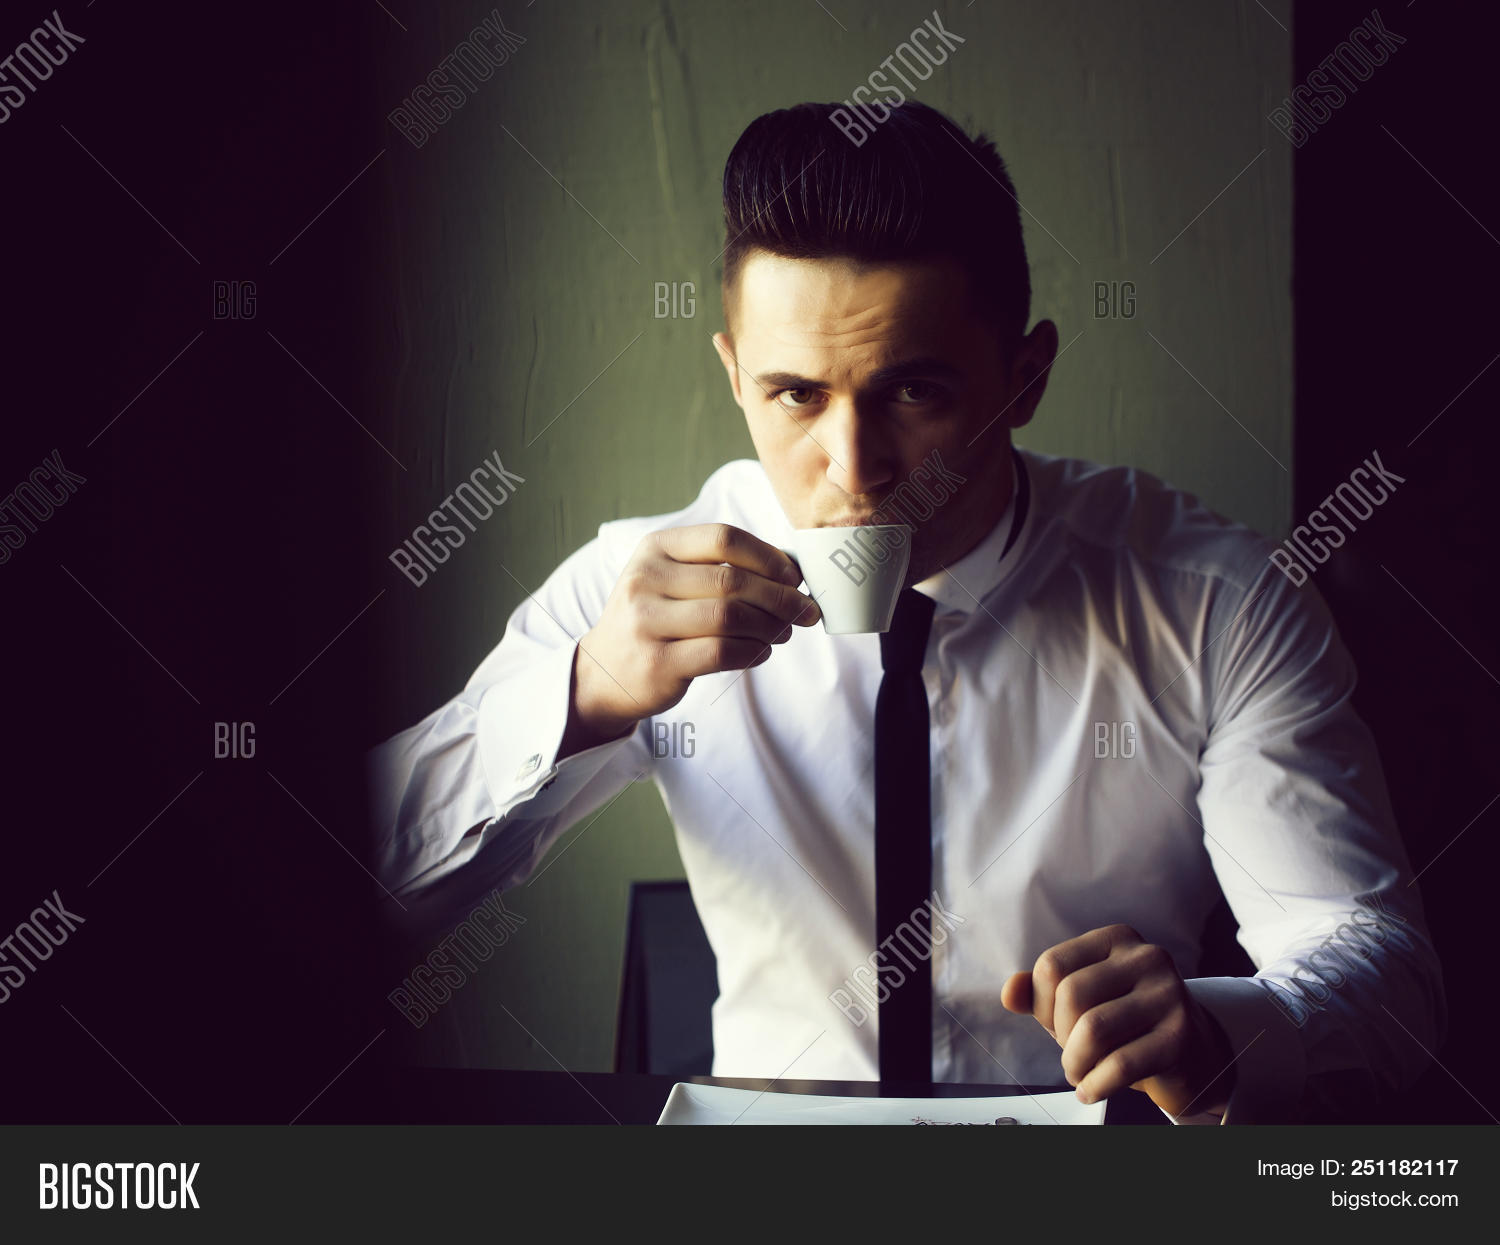 a77dd93a626 Man young handsome elegant model wears white shirt black skinny necktie  sits at table drinks coffee and looks in camera indoor on grey background